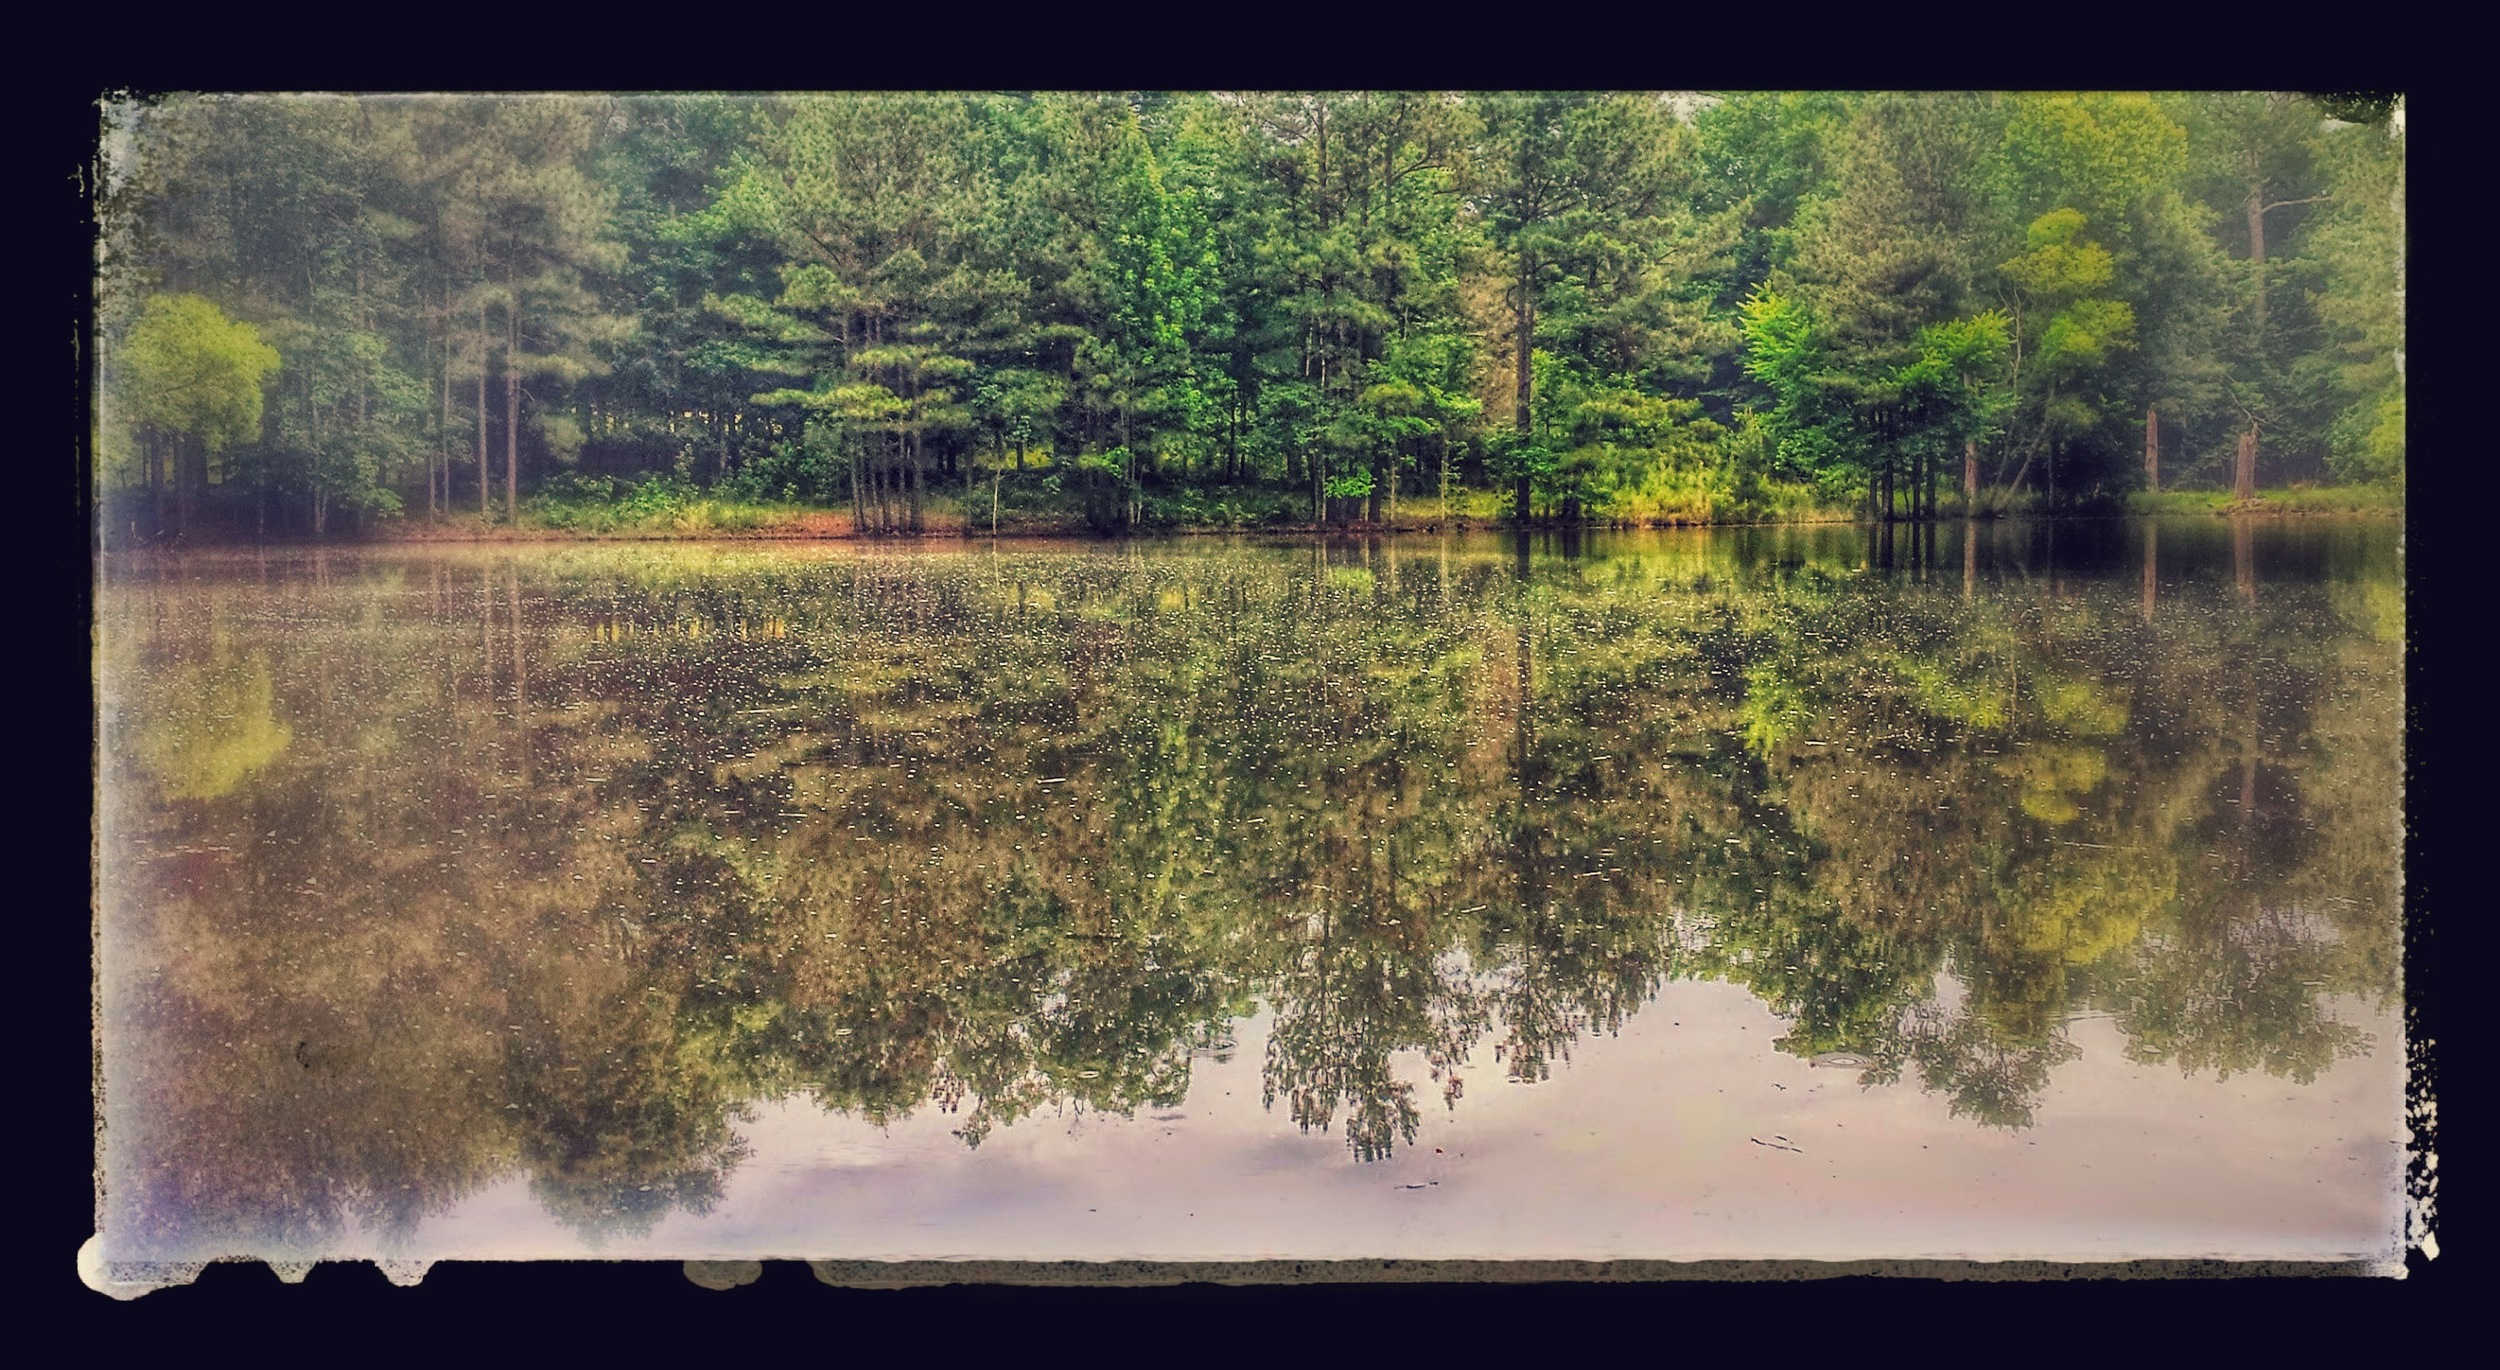 2acre Pond on 3630 Charlie Grissom Rd, Kittrell, NC 27544-EFFECTS.jpg